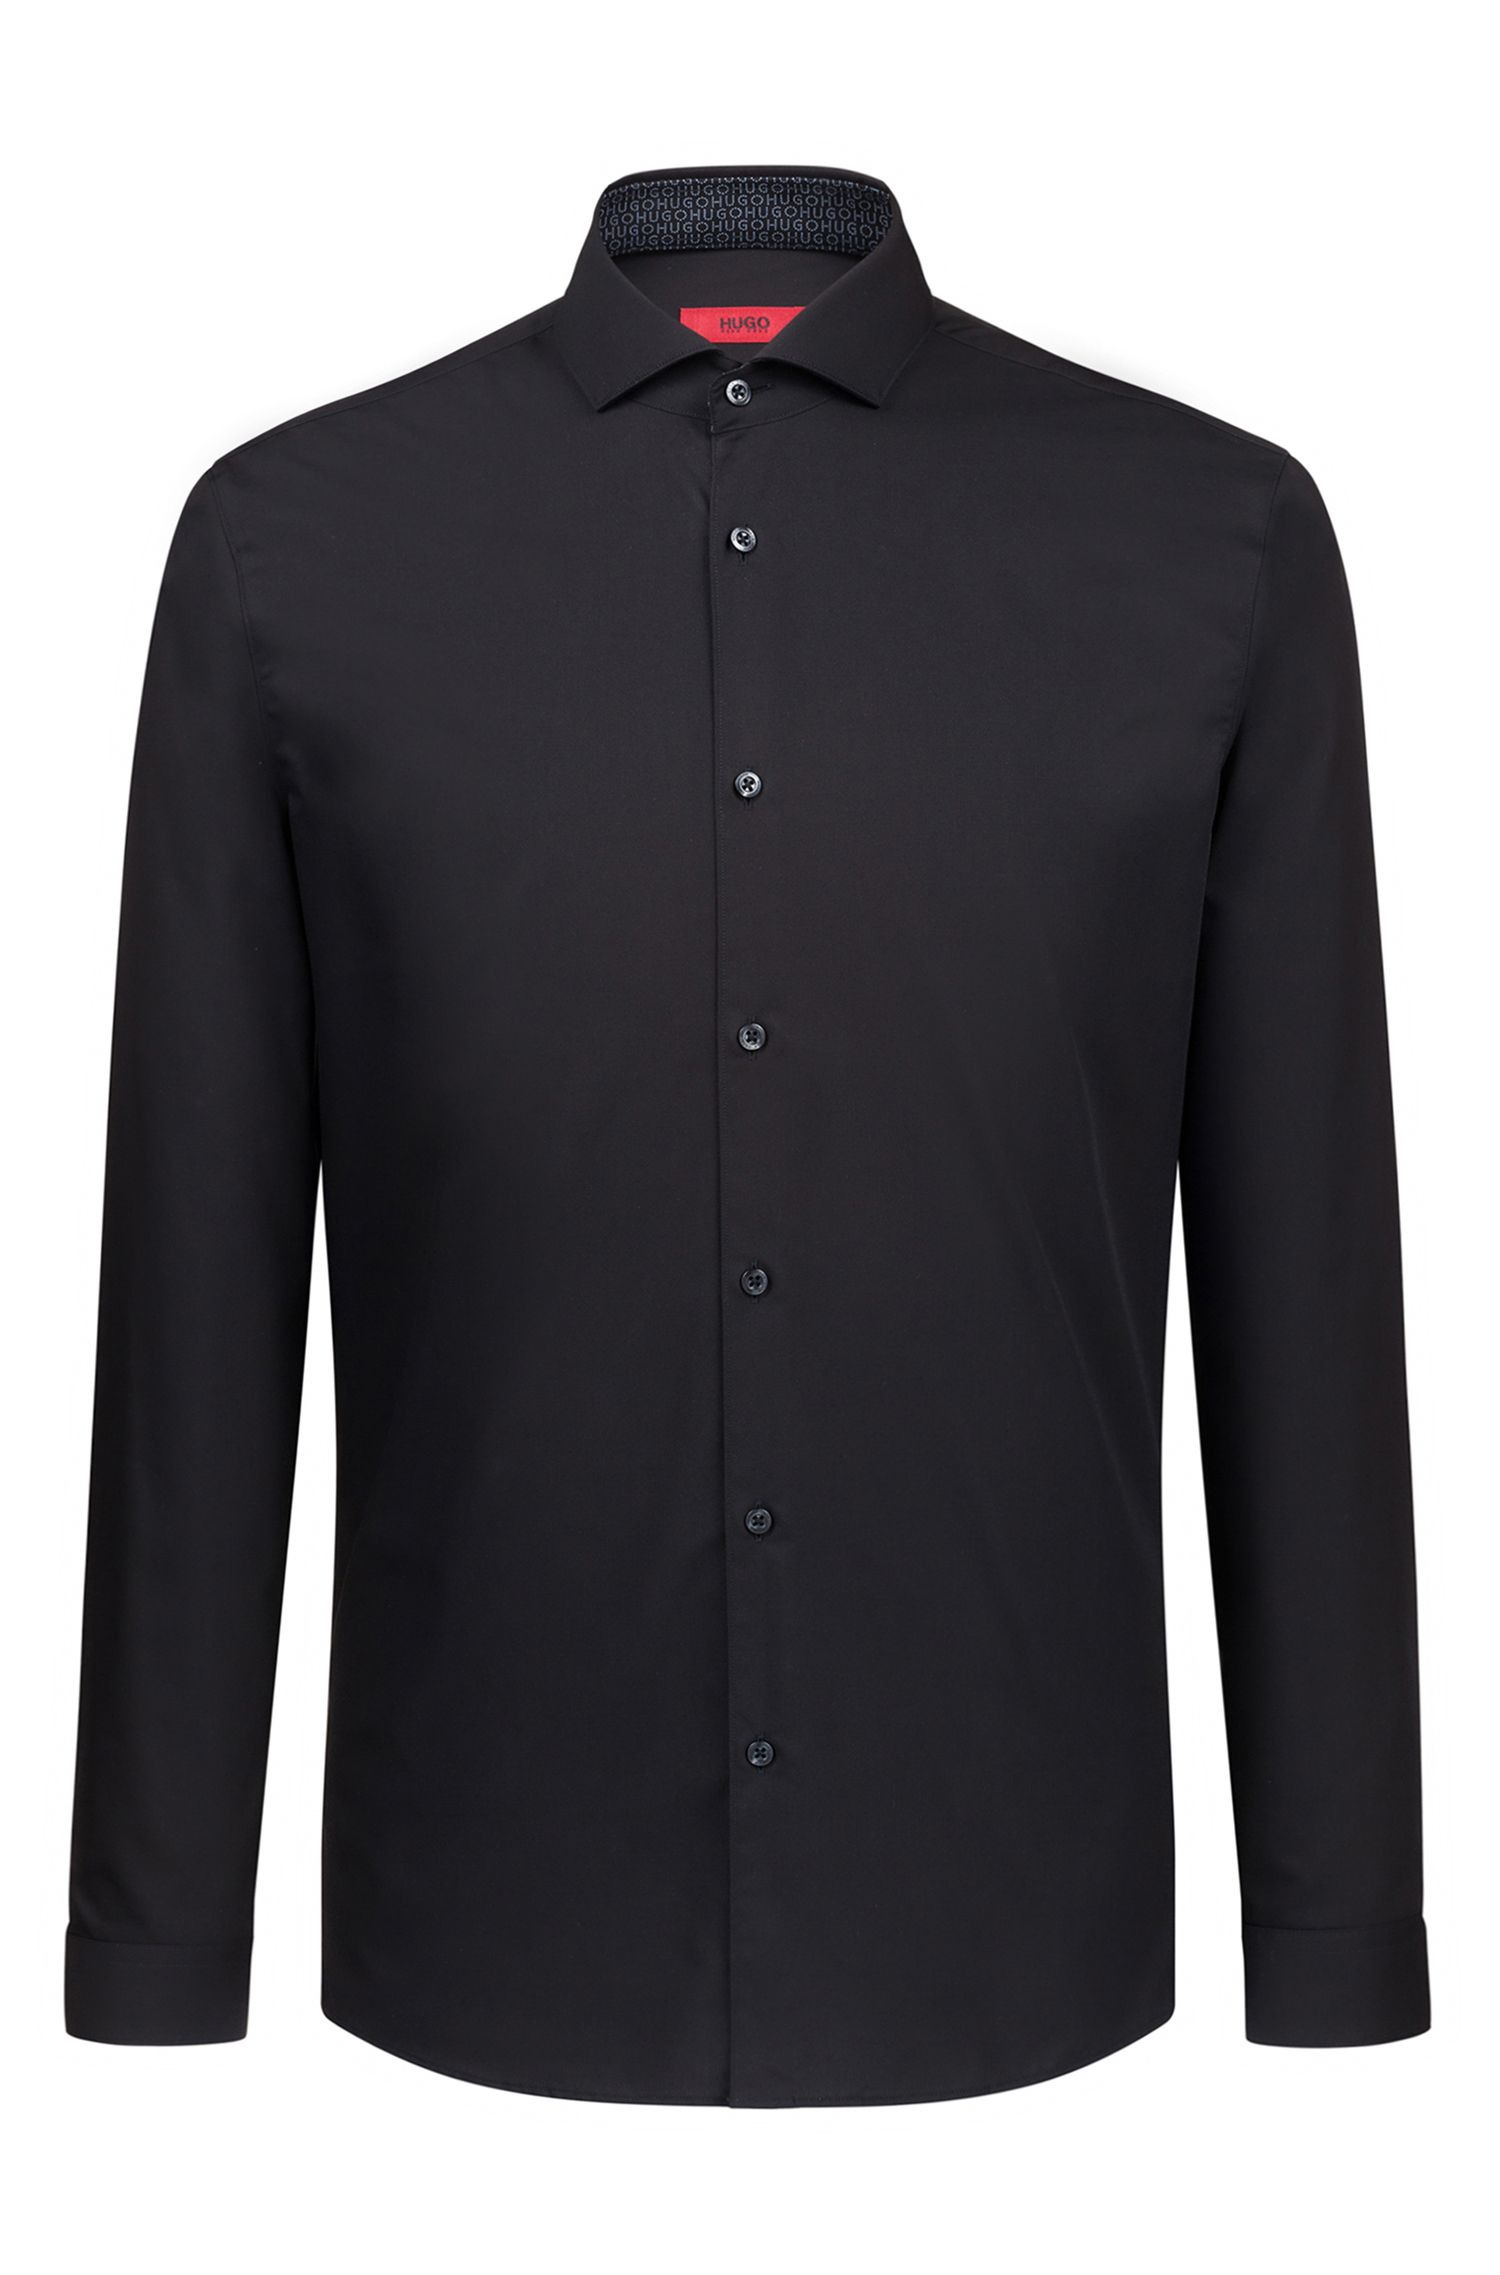 Camicia extra slim fit facile da stirare con colletto alla francese, Nero